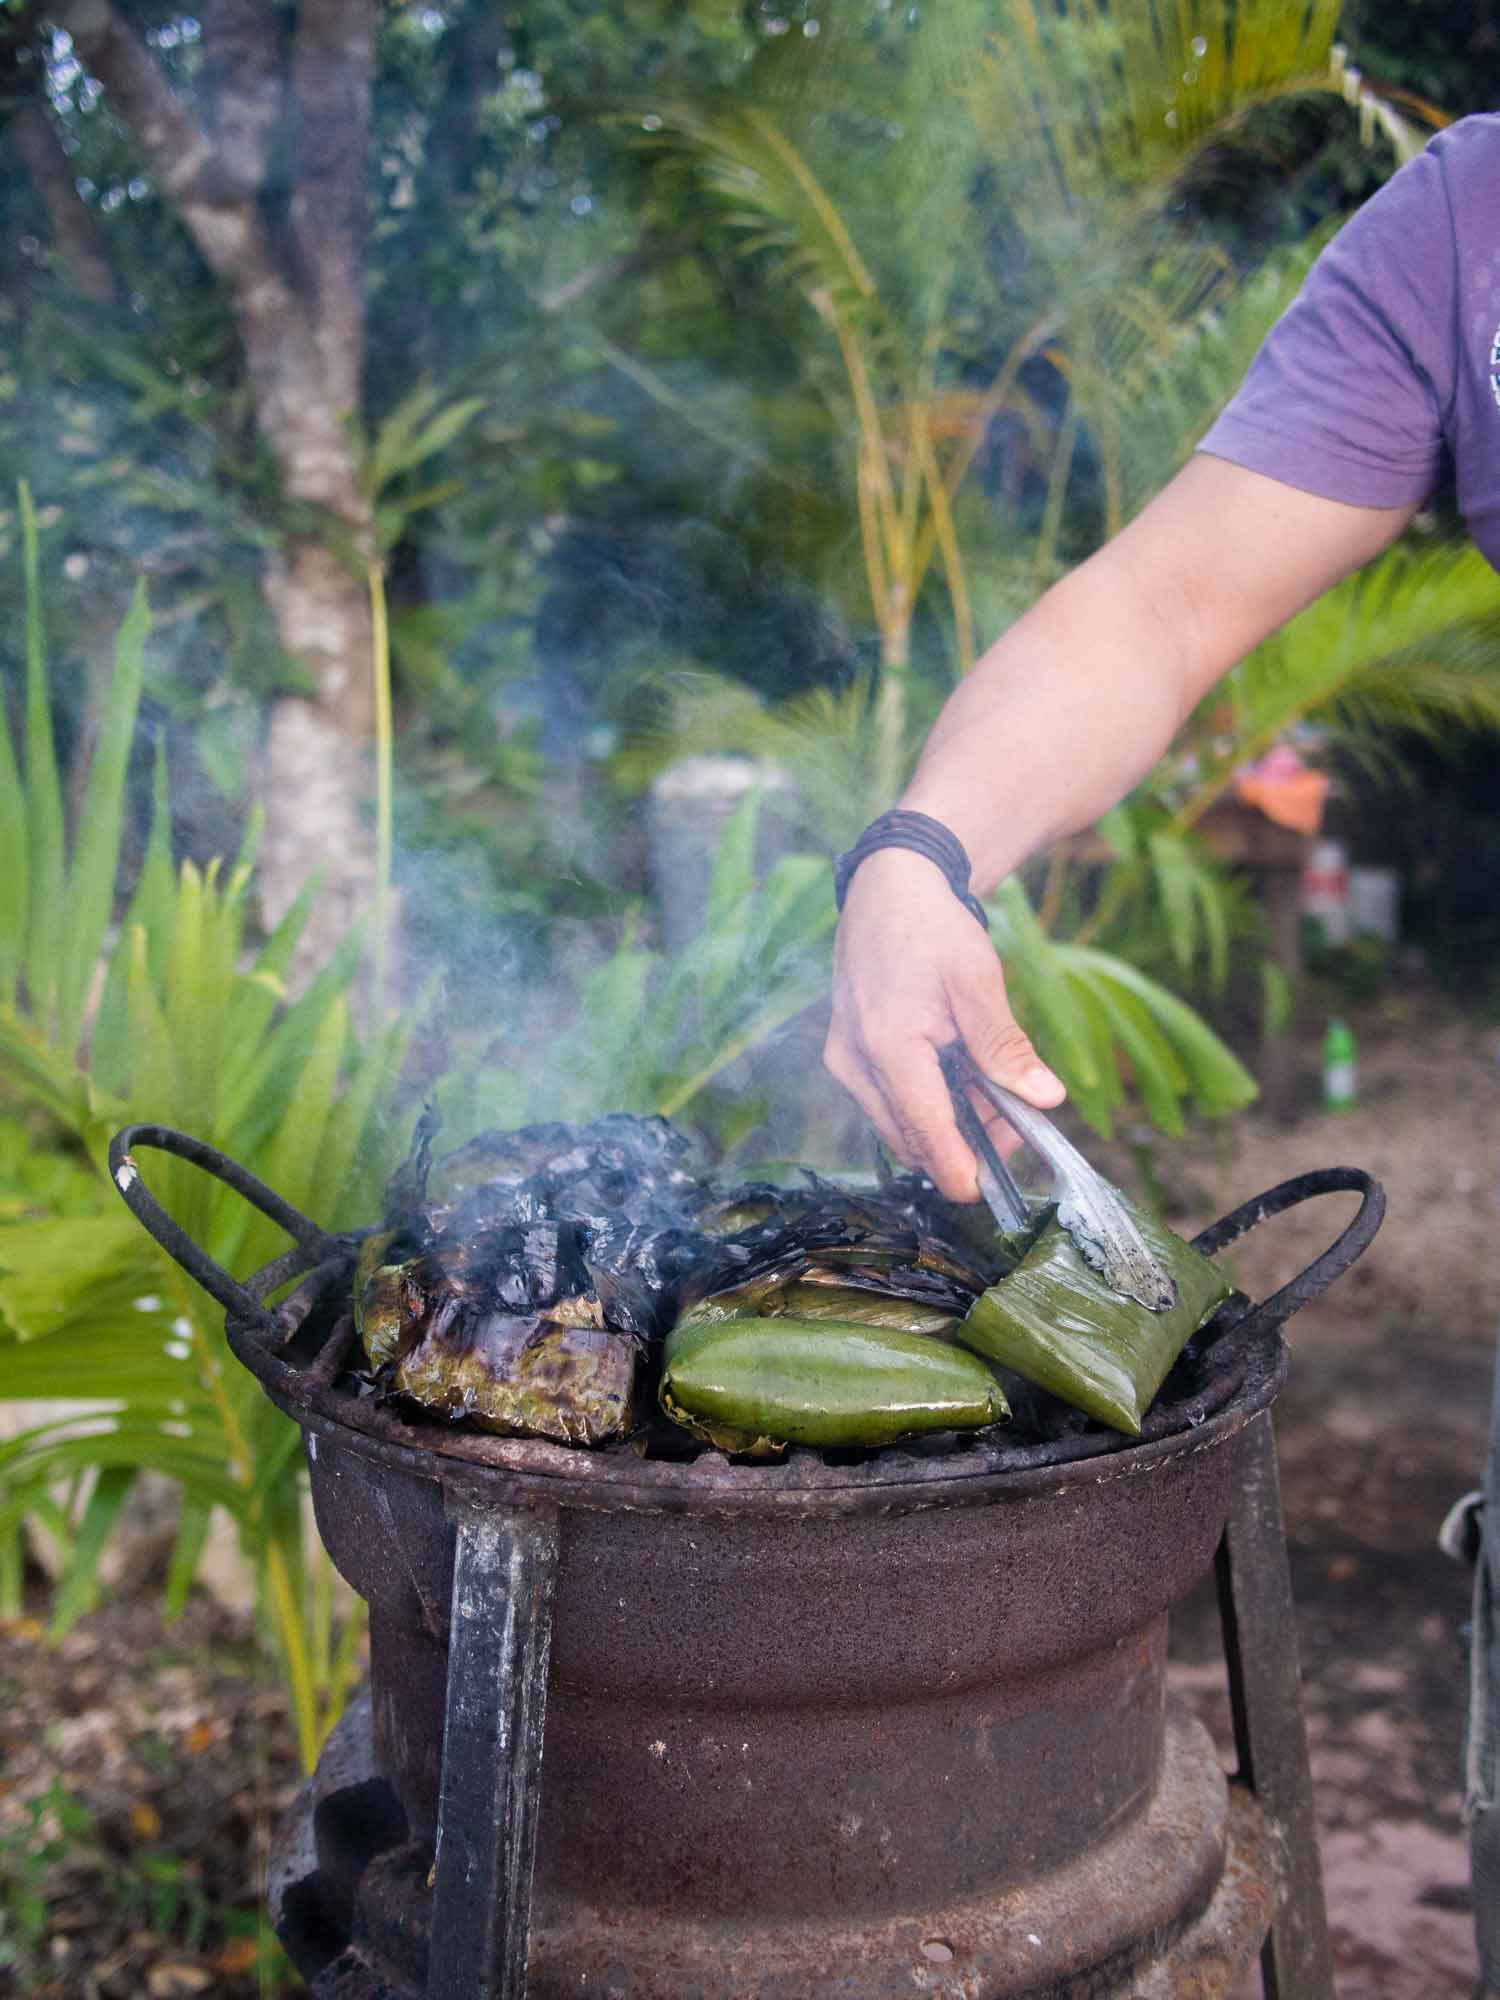 Grilling tamales in banana leaves.